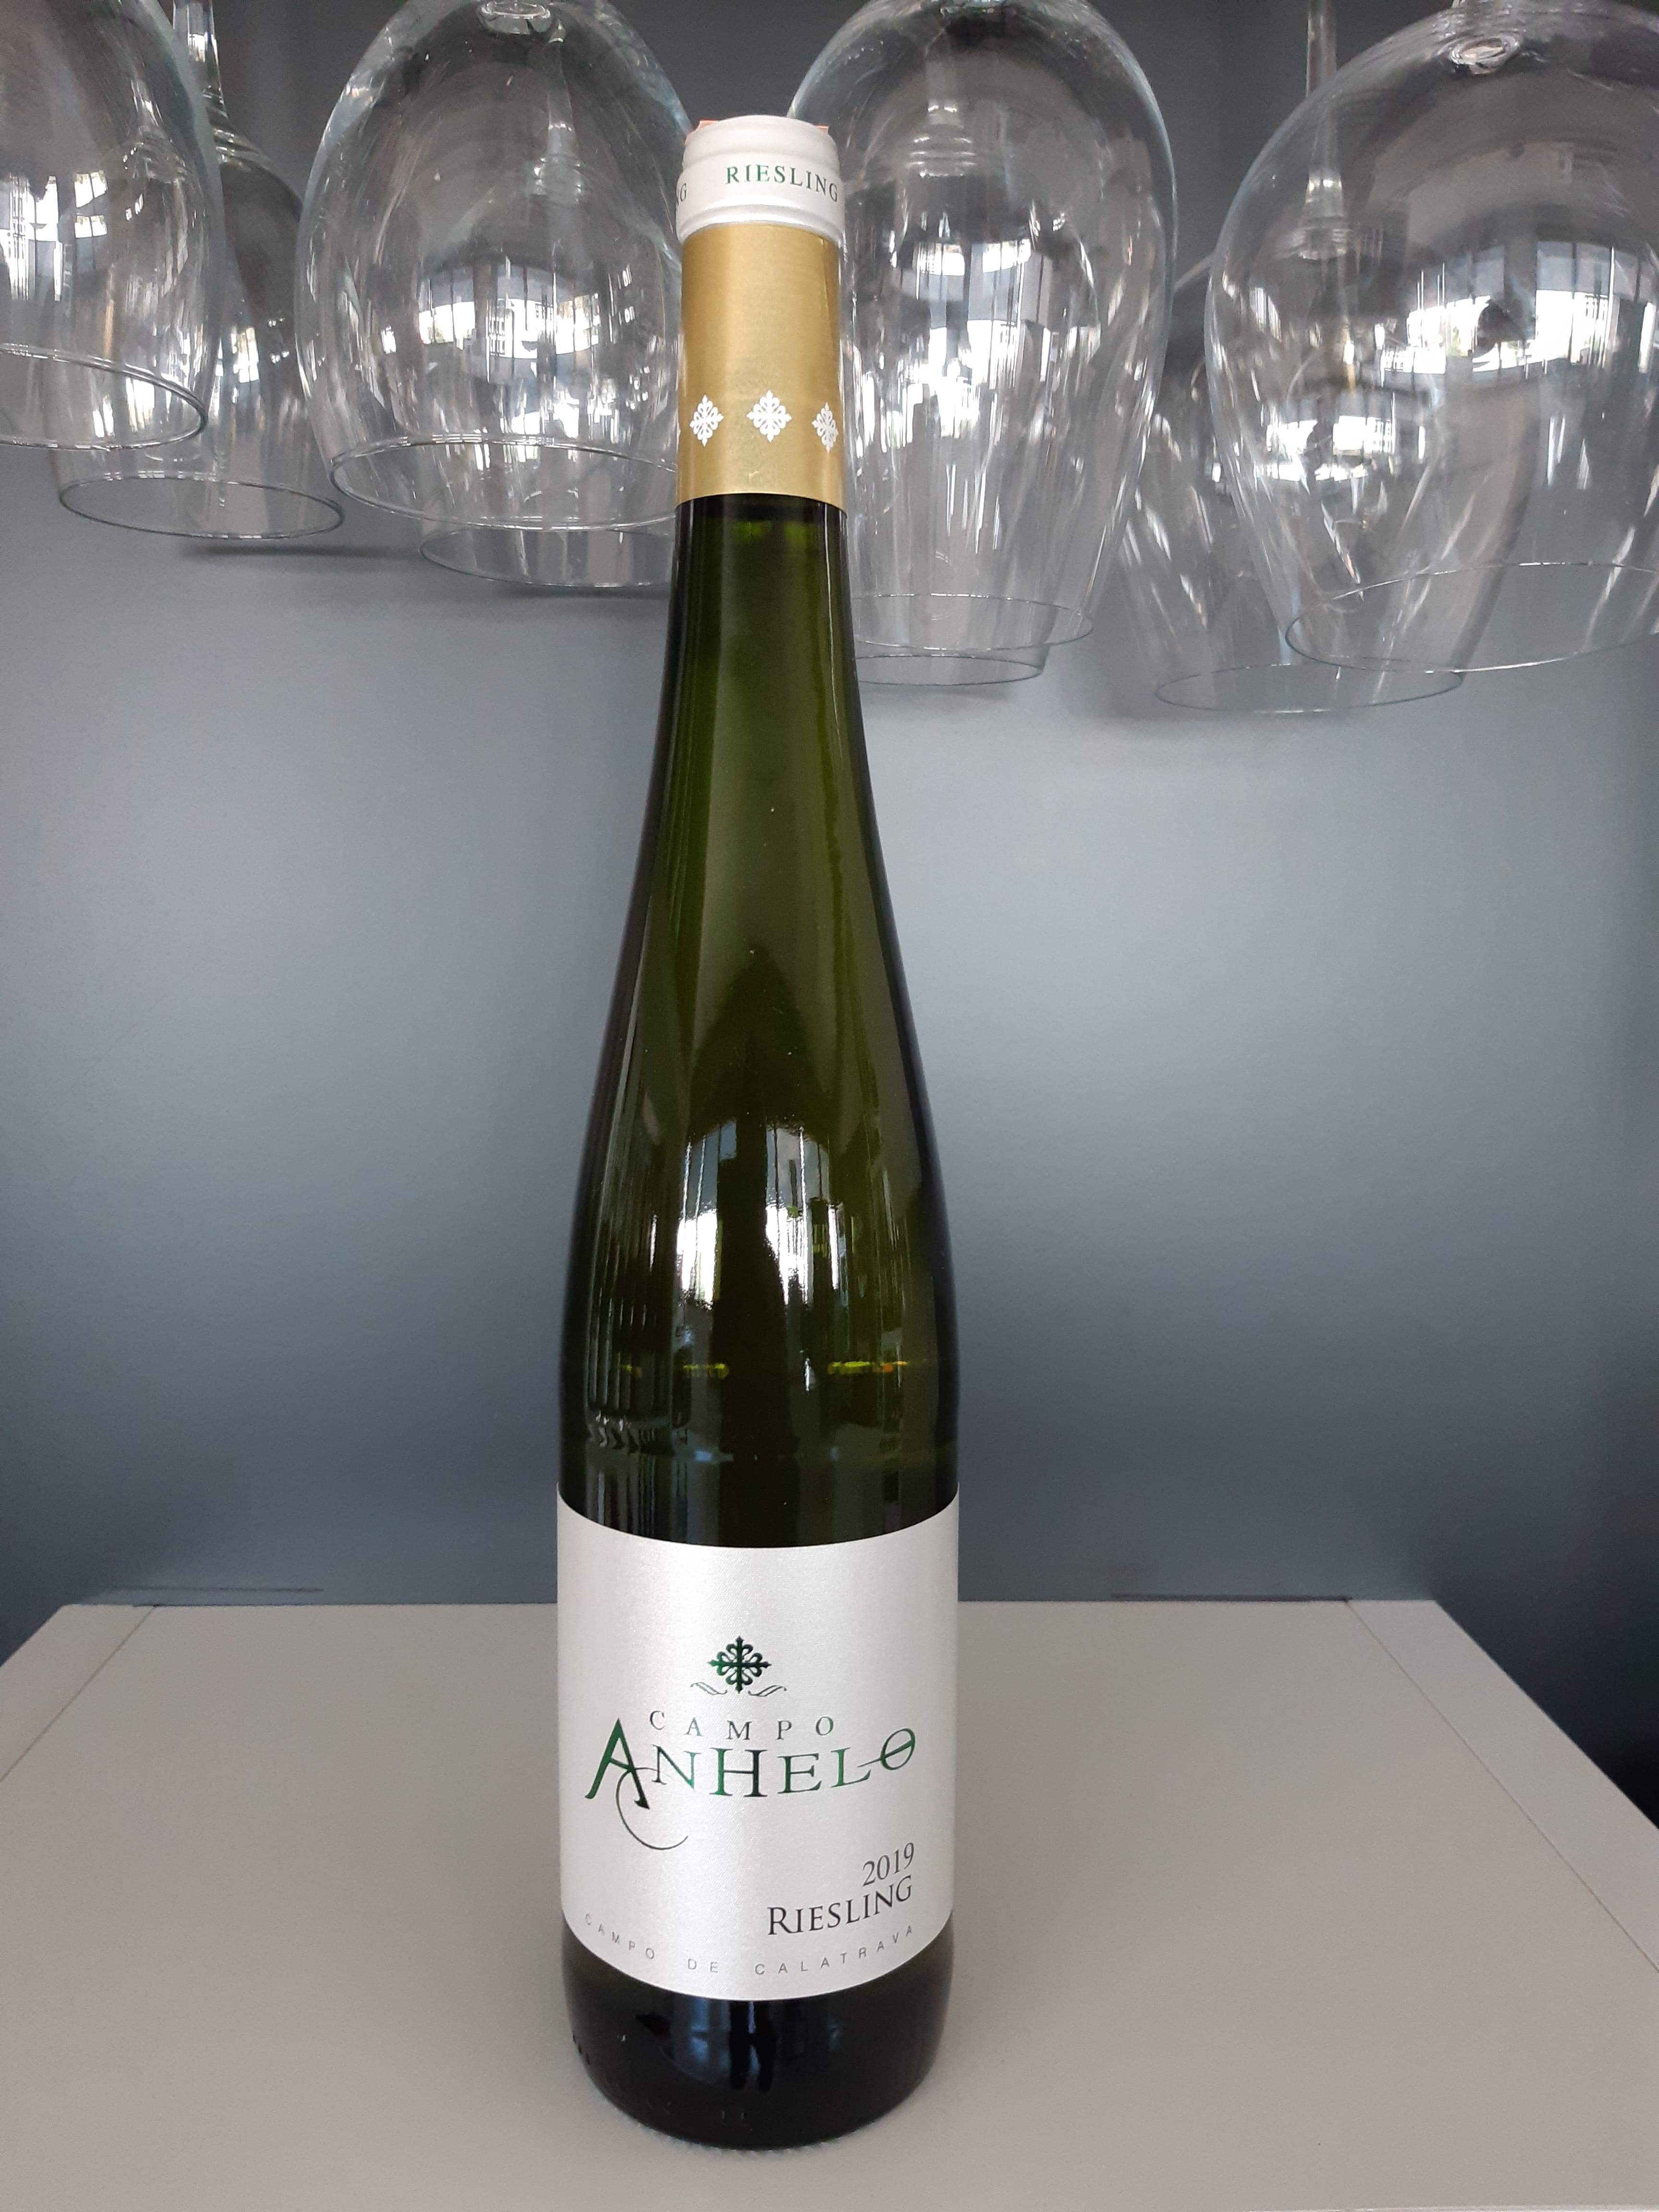 Campos Anhelo Riesling